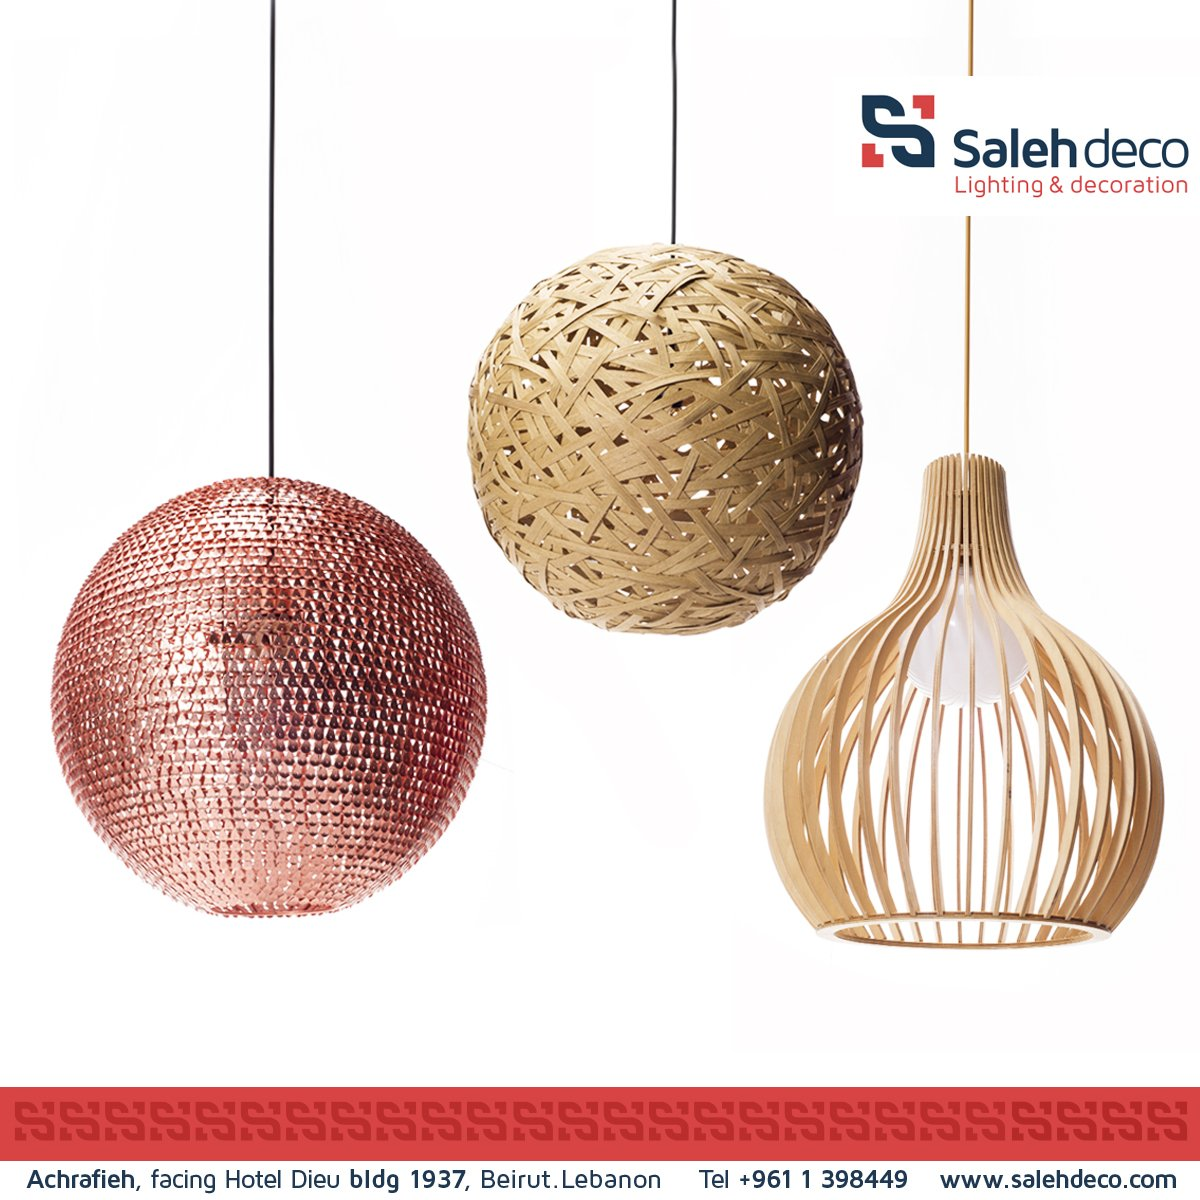 Bring your #room to life with these earth toned coloured #pendants.  #light #design #art #decor #homedecor #interior https://t.co/DVaJNmSXin